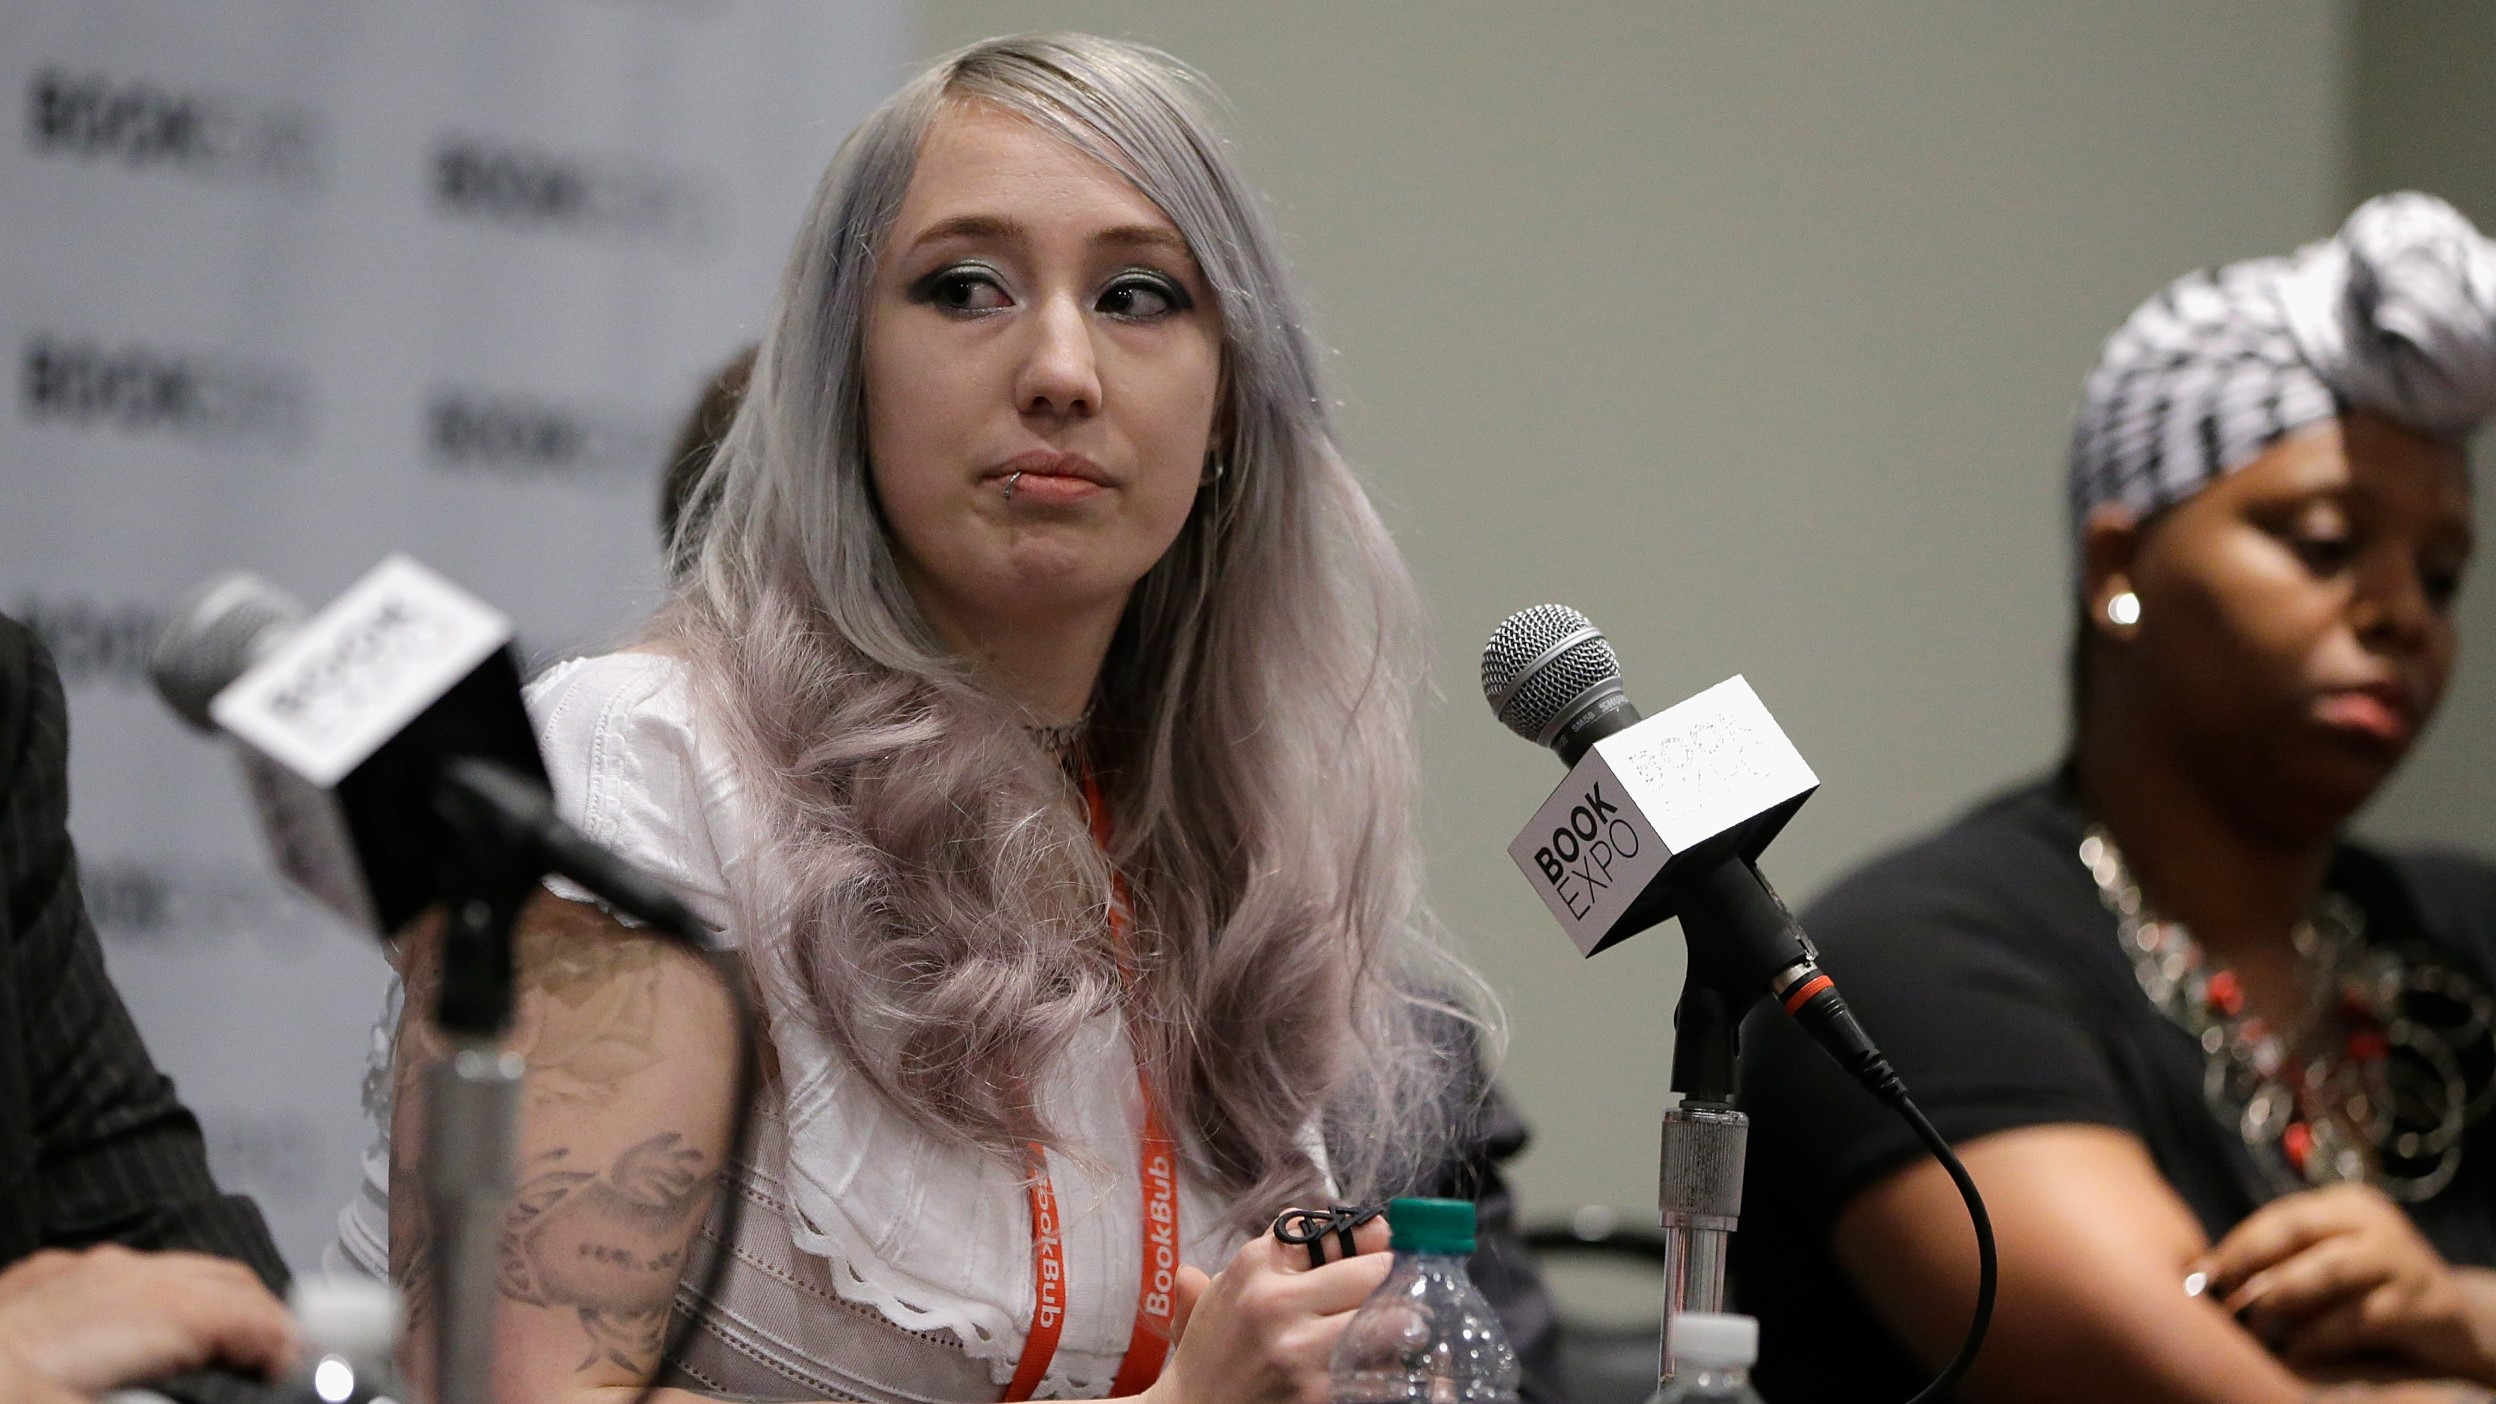 zoe-quinn-speaks-during-first-amendmant-resistance-panel-during-bookexpo-2017-javits-center.jpg